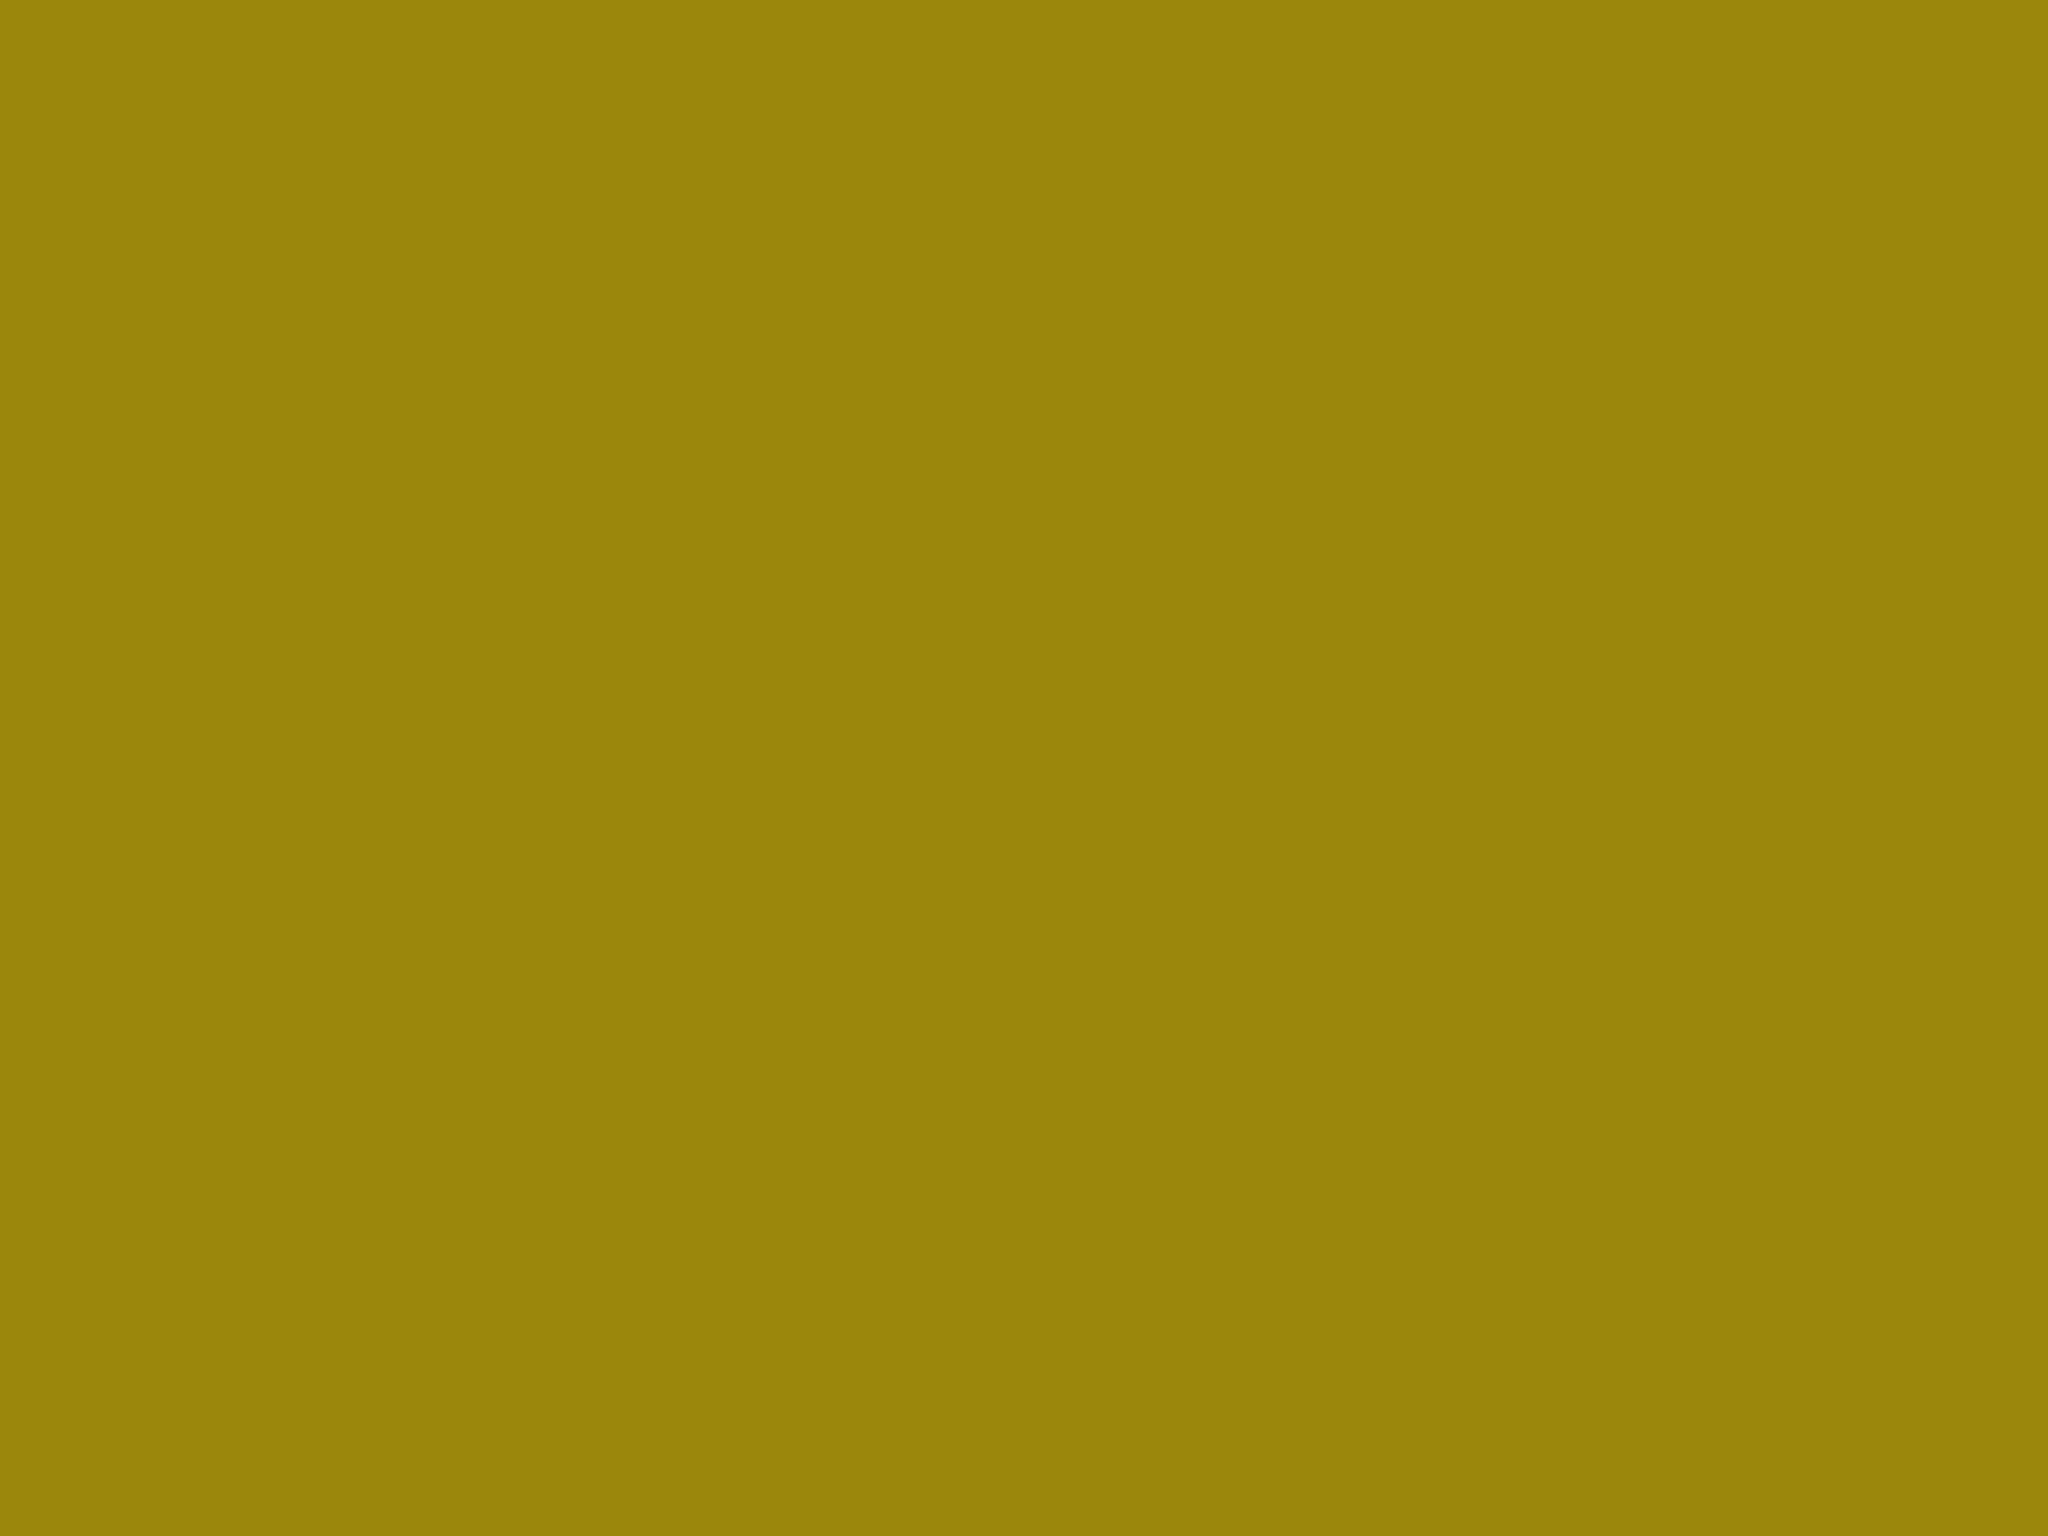 2048x1536 Dark Yellow Solid Color Background